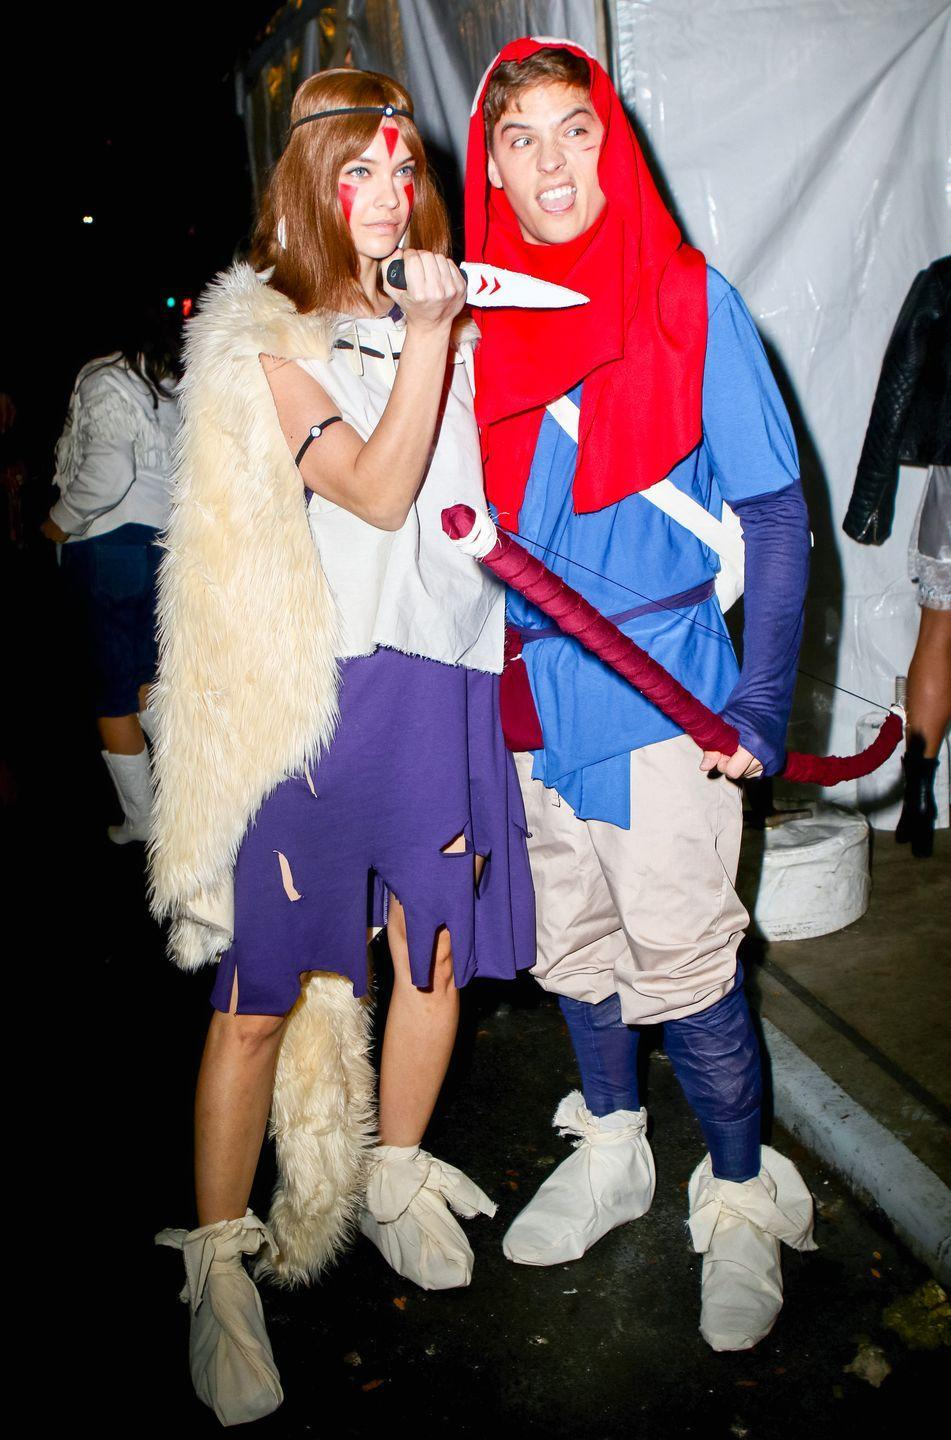 <p>Barbara Palvin and Dylan Sprouse evoked a Studio Ghibli favorite for their 2019 costumes. The couple dressed as Ashitaka and San from Princess Mononoke and even got into character while posing for photos.</p>